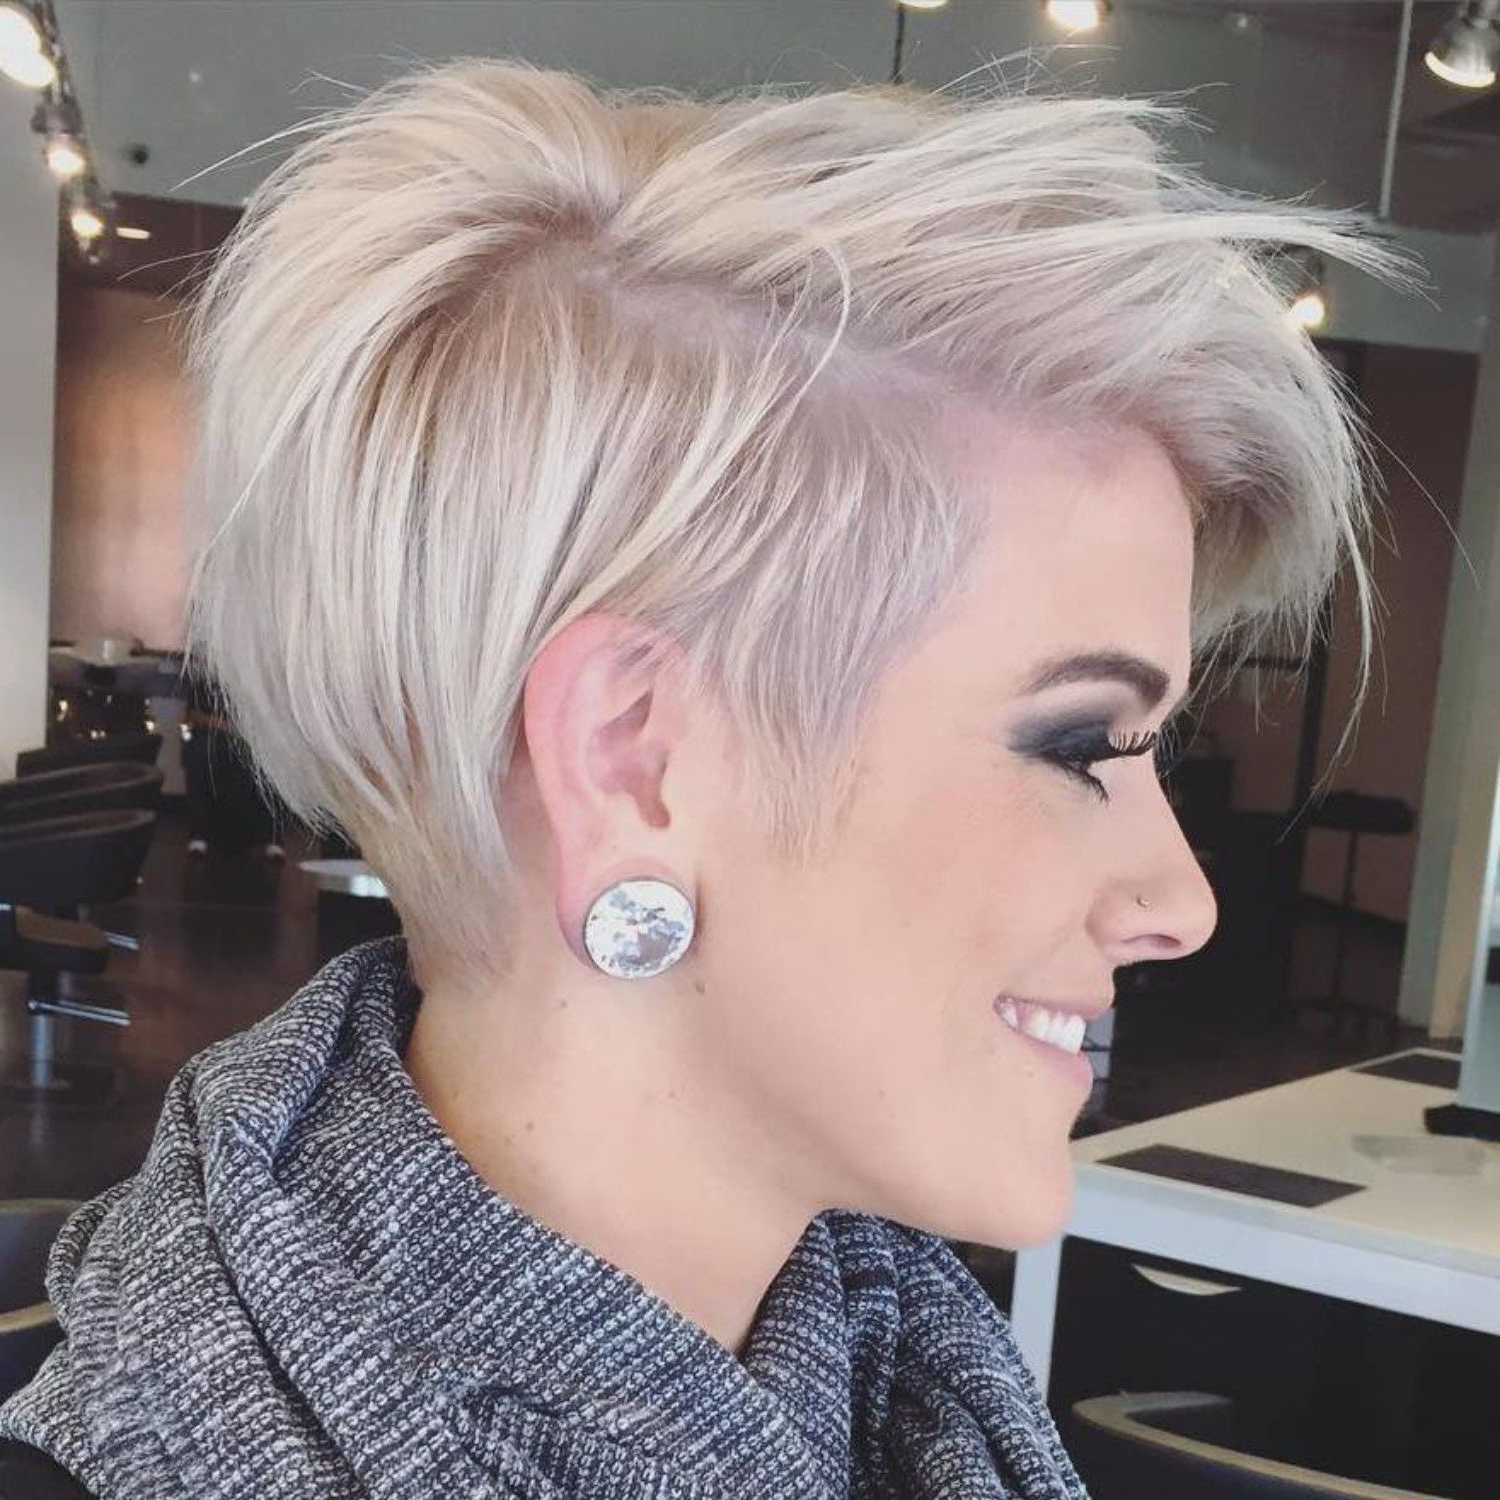 Fashion : Chic Short Haircuts Most Inspiring Long Messy Throughout Most Up To Date Messy Pixie Asian Hairstyles (View 8 of 20)